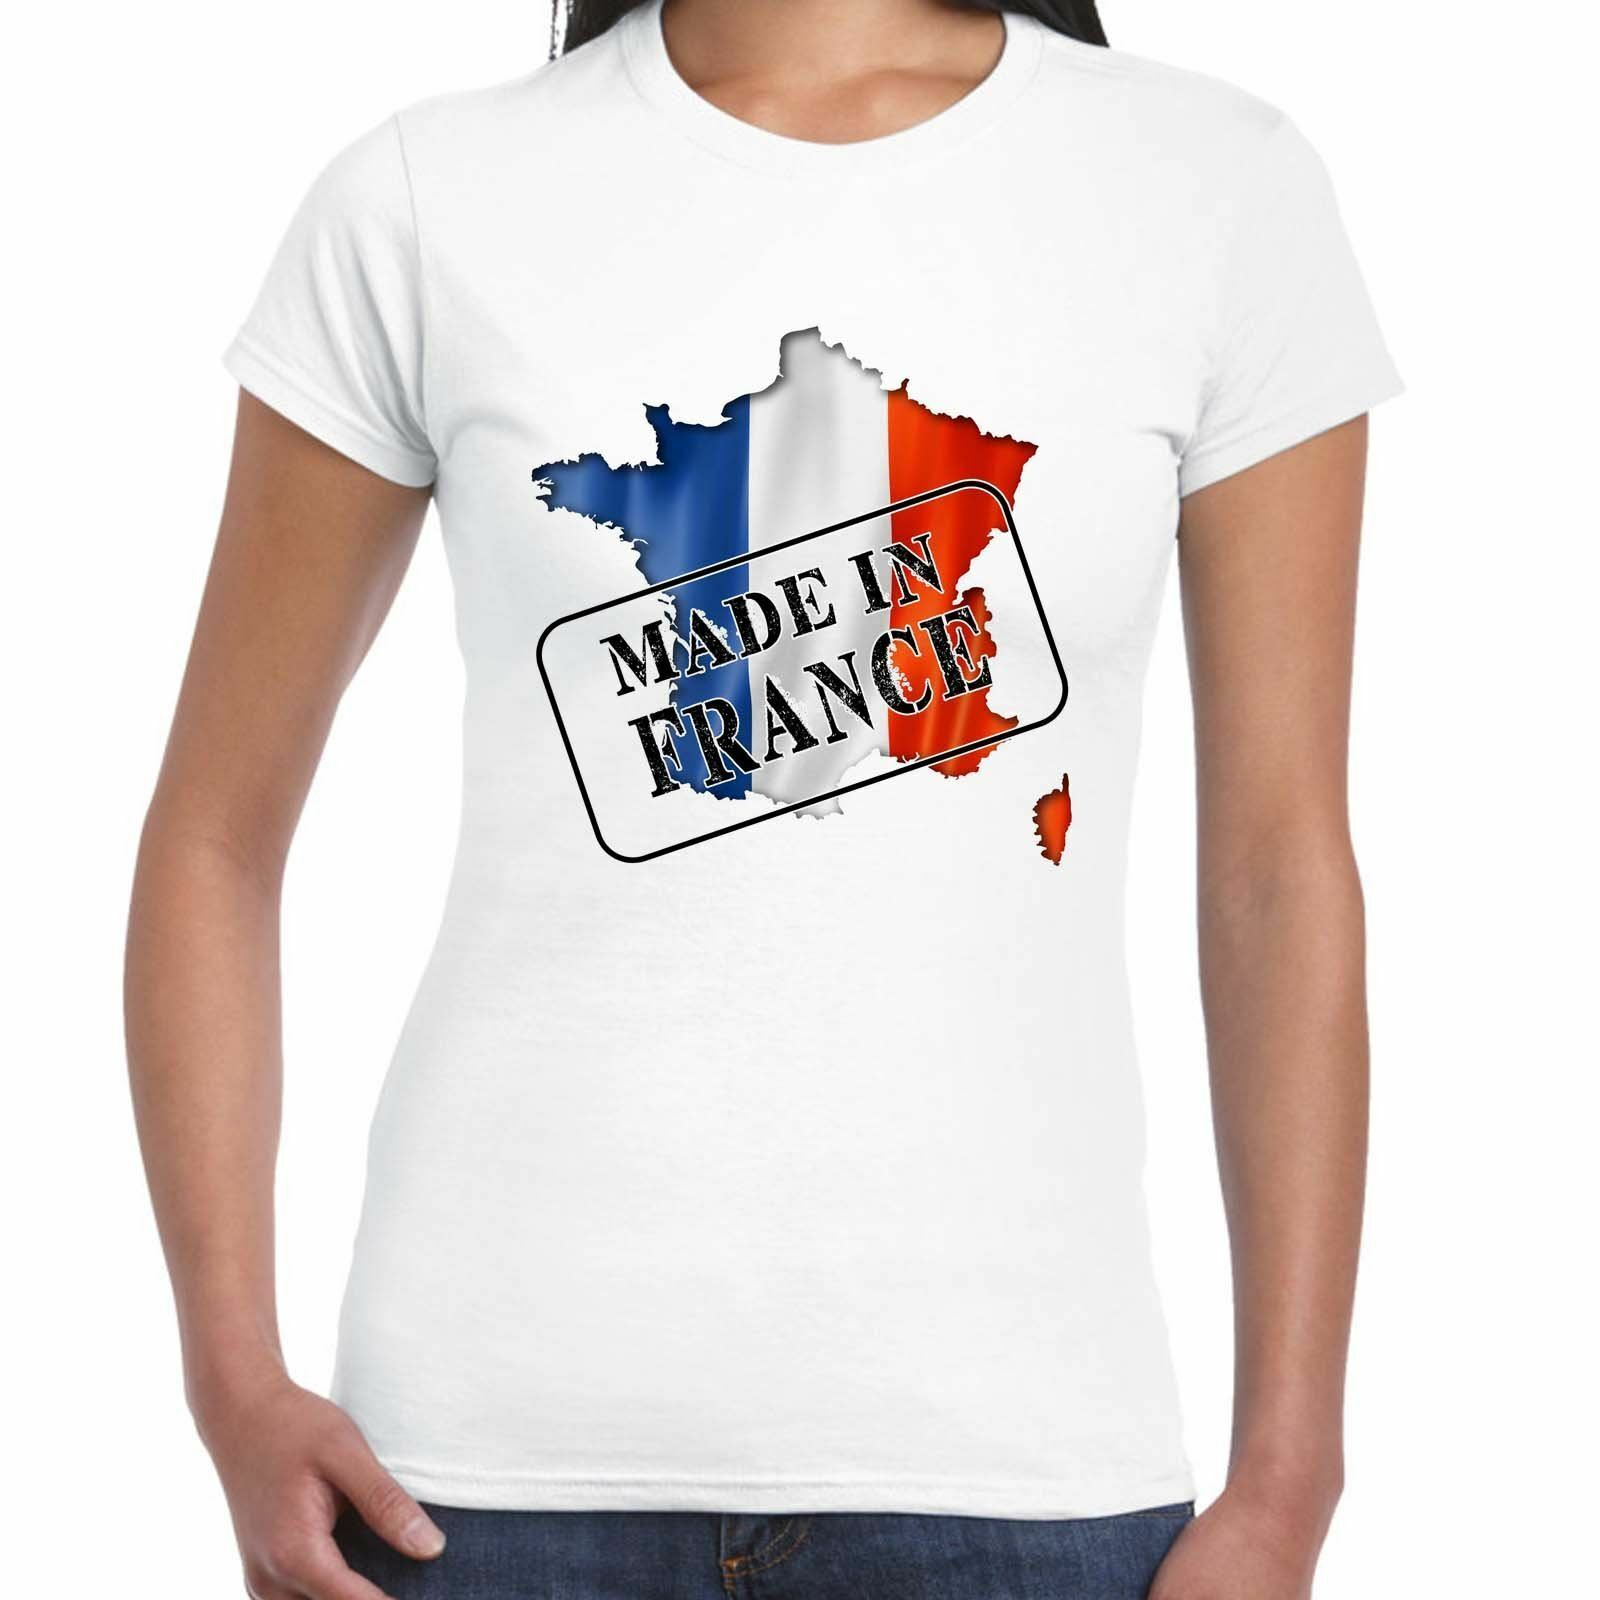 Made in France - Flag and map - Ladies T Shirt - Country, Gift, Tee